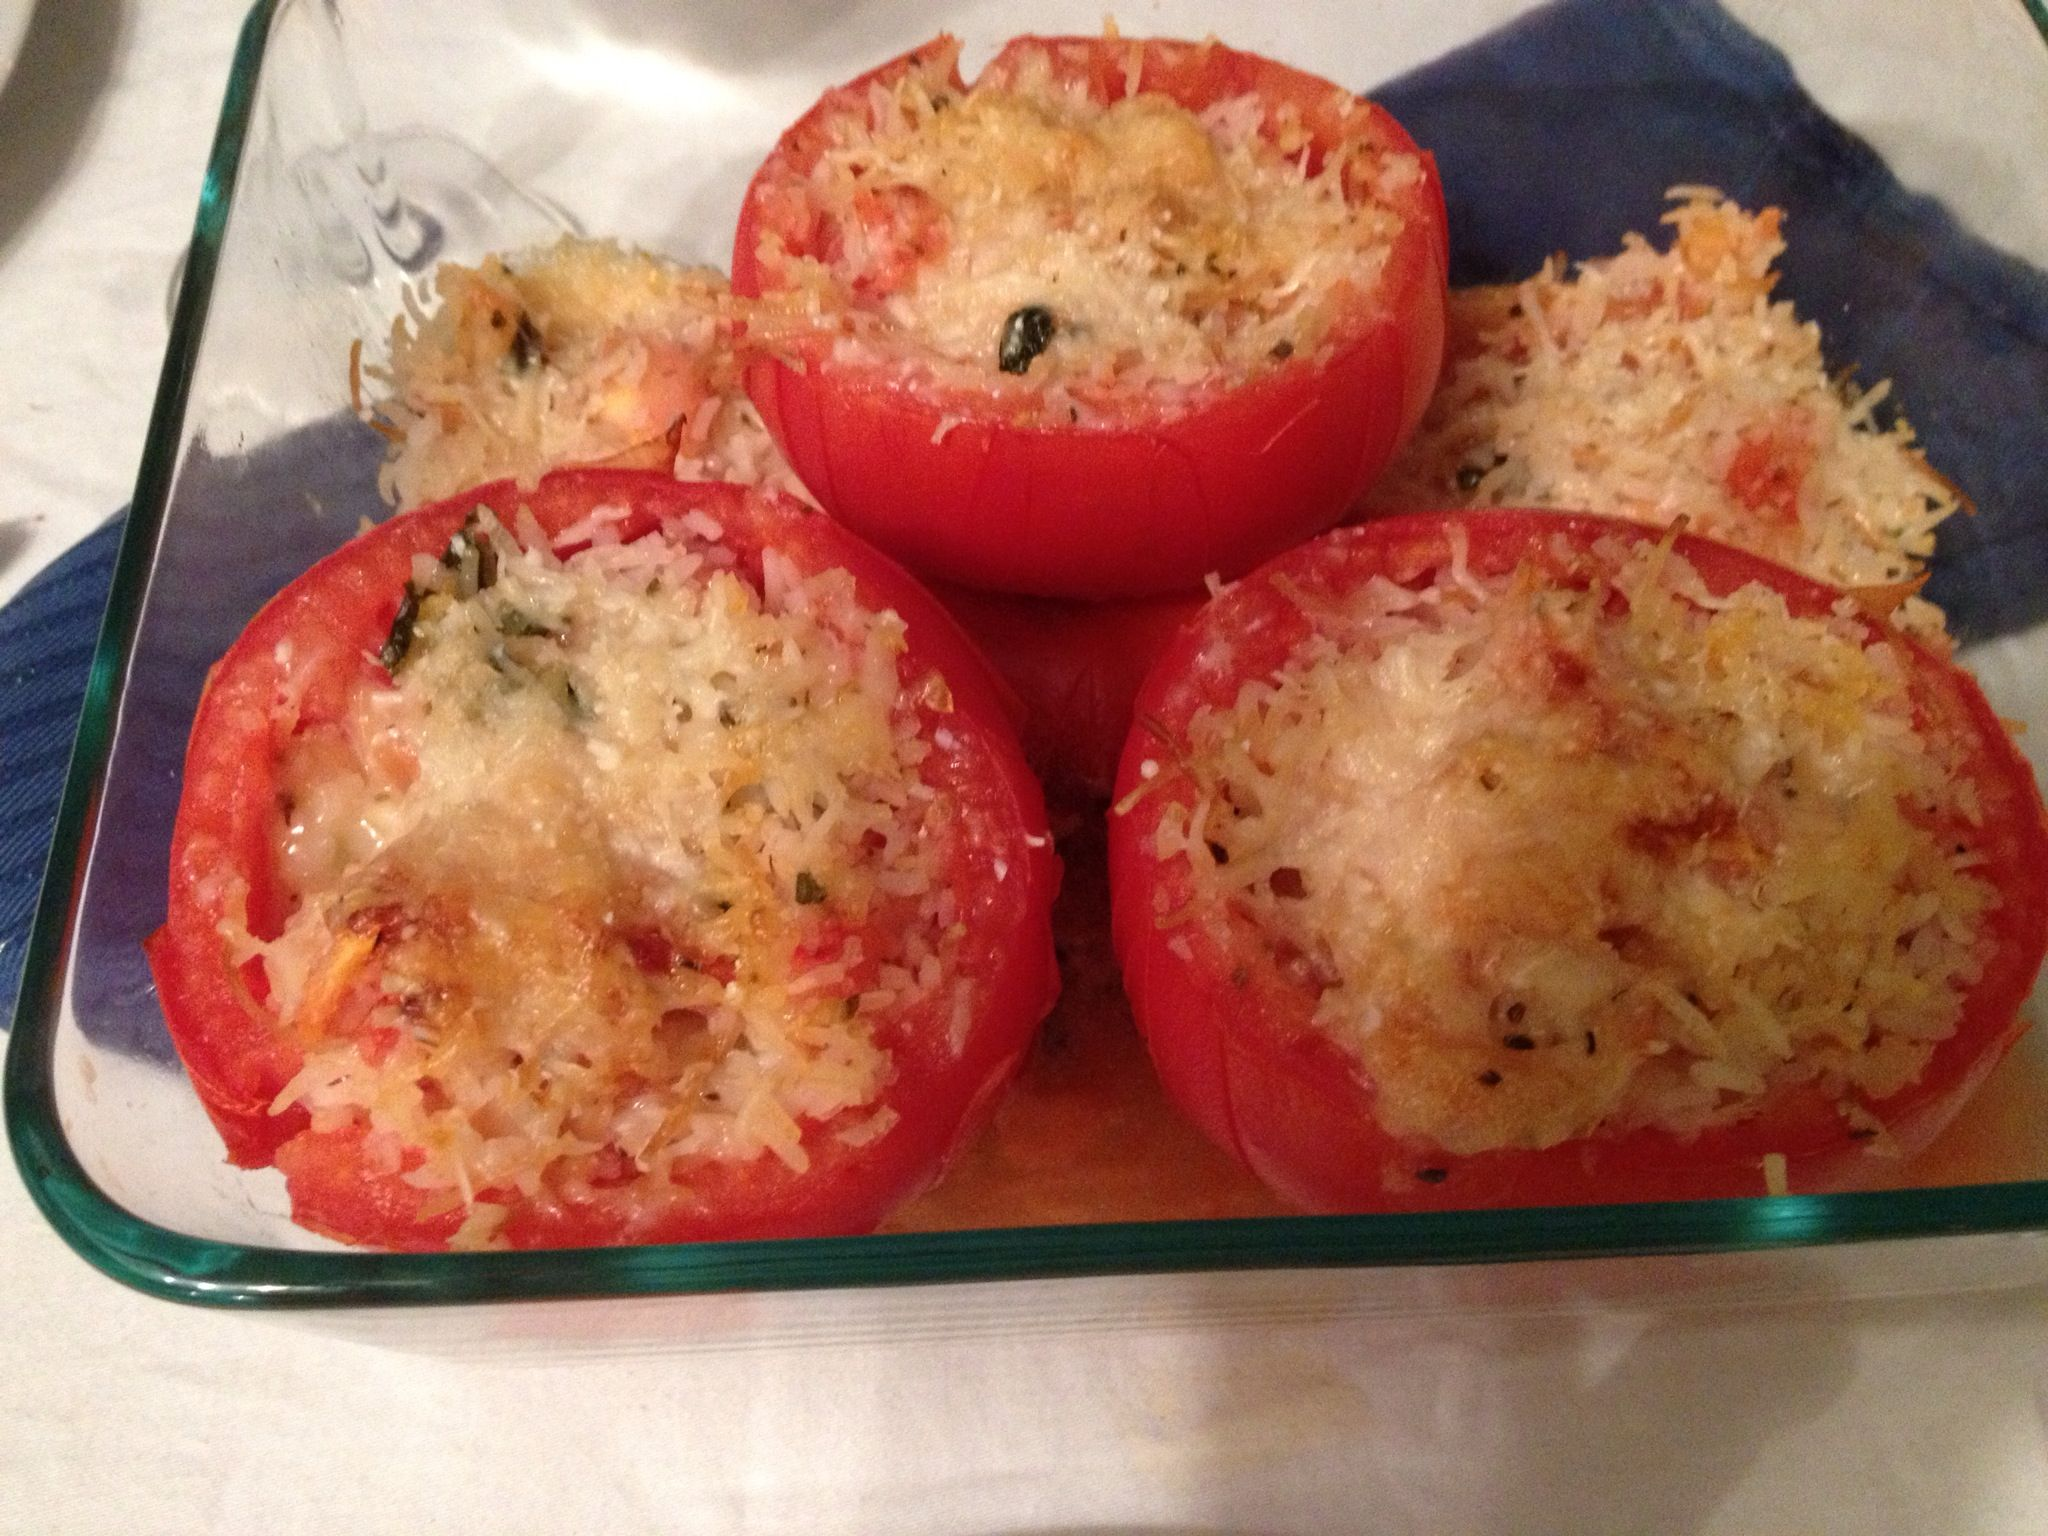 Lidia\'s Italy stuffed tomato recipe | Food | Pinterest | Recipes ...